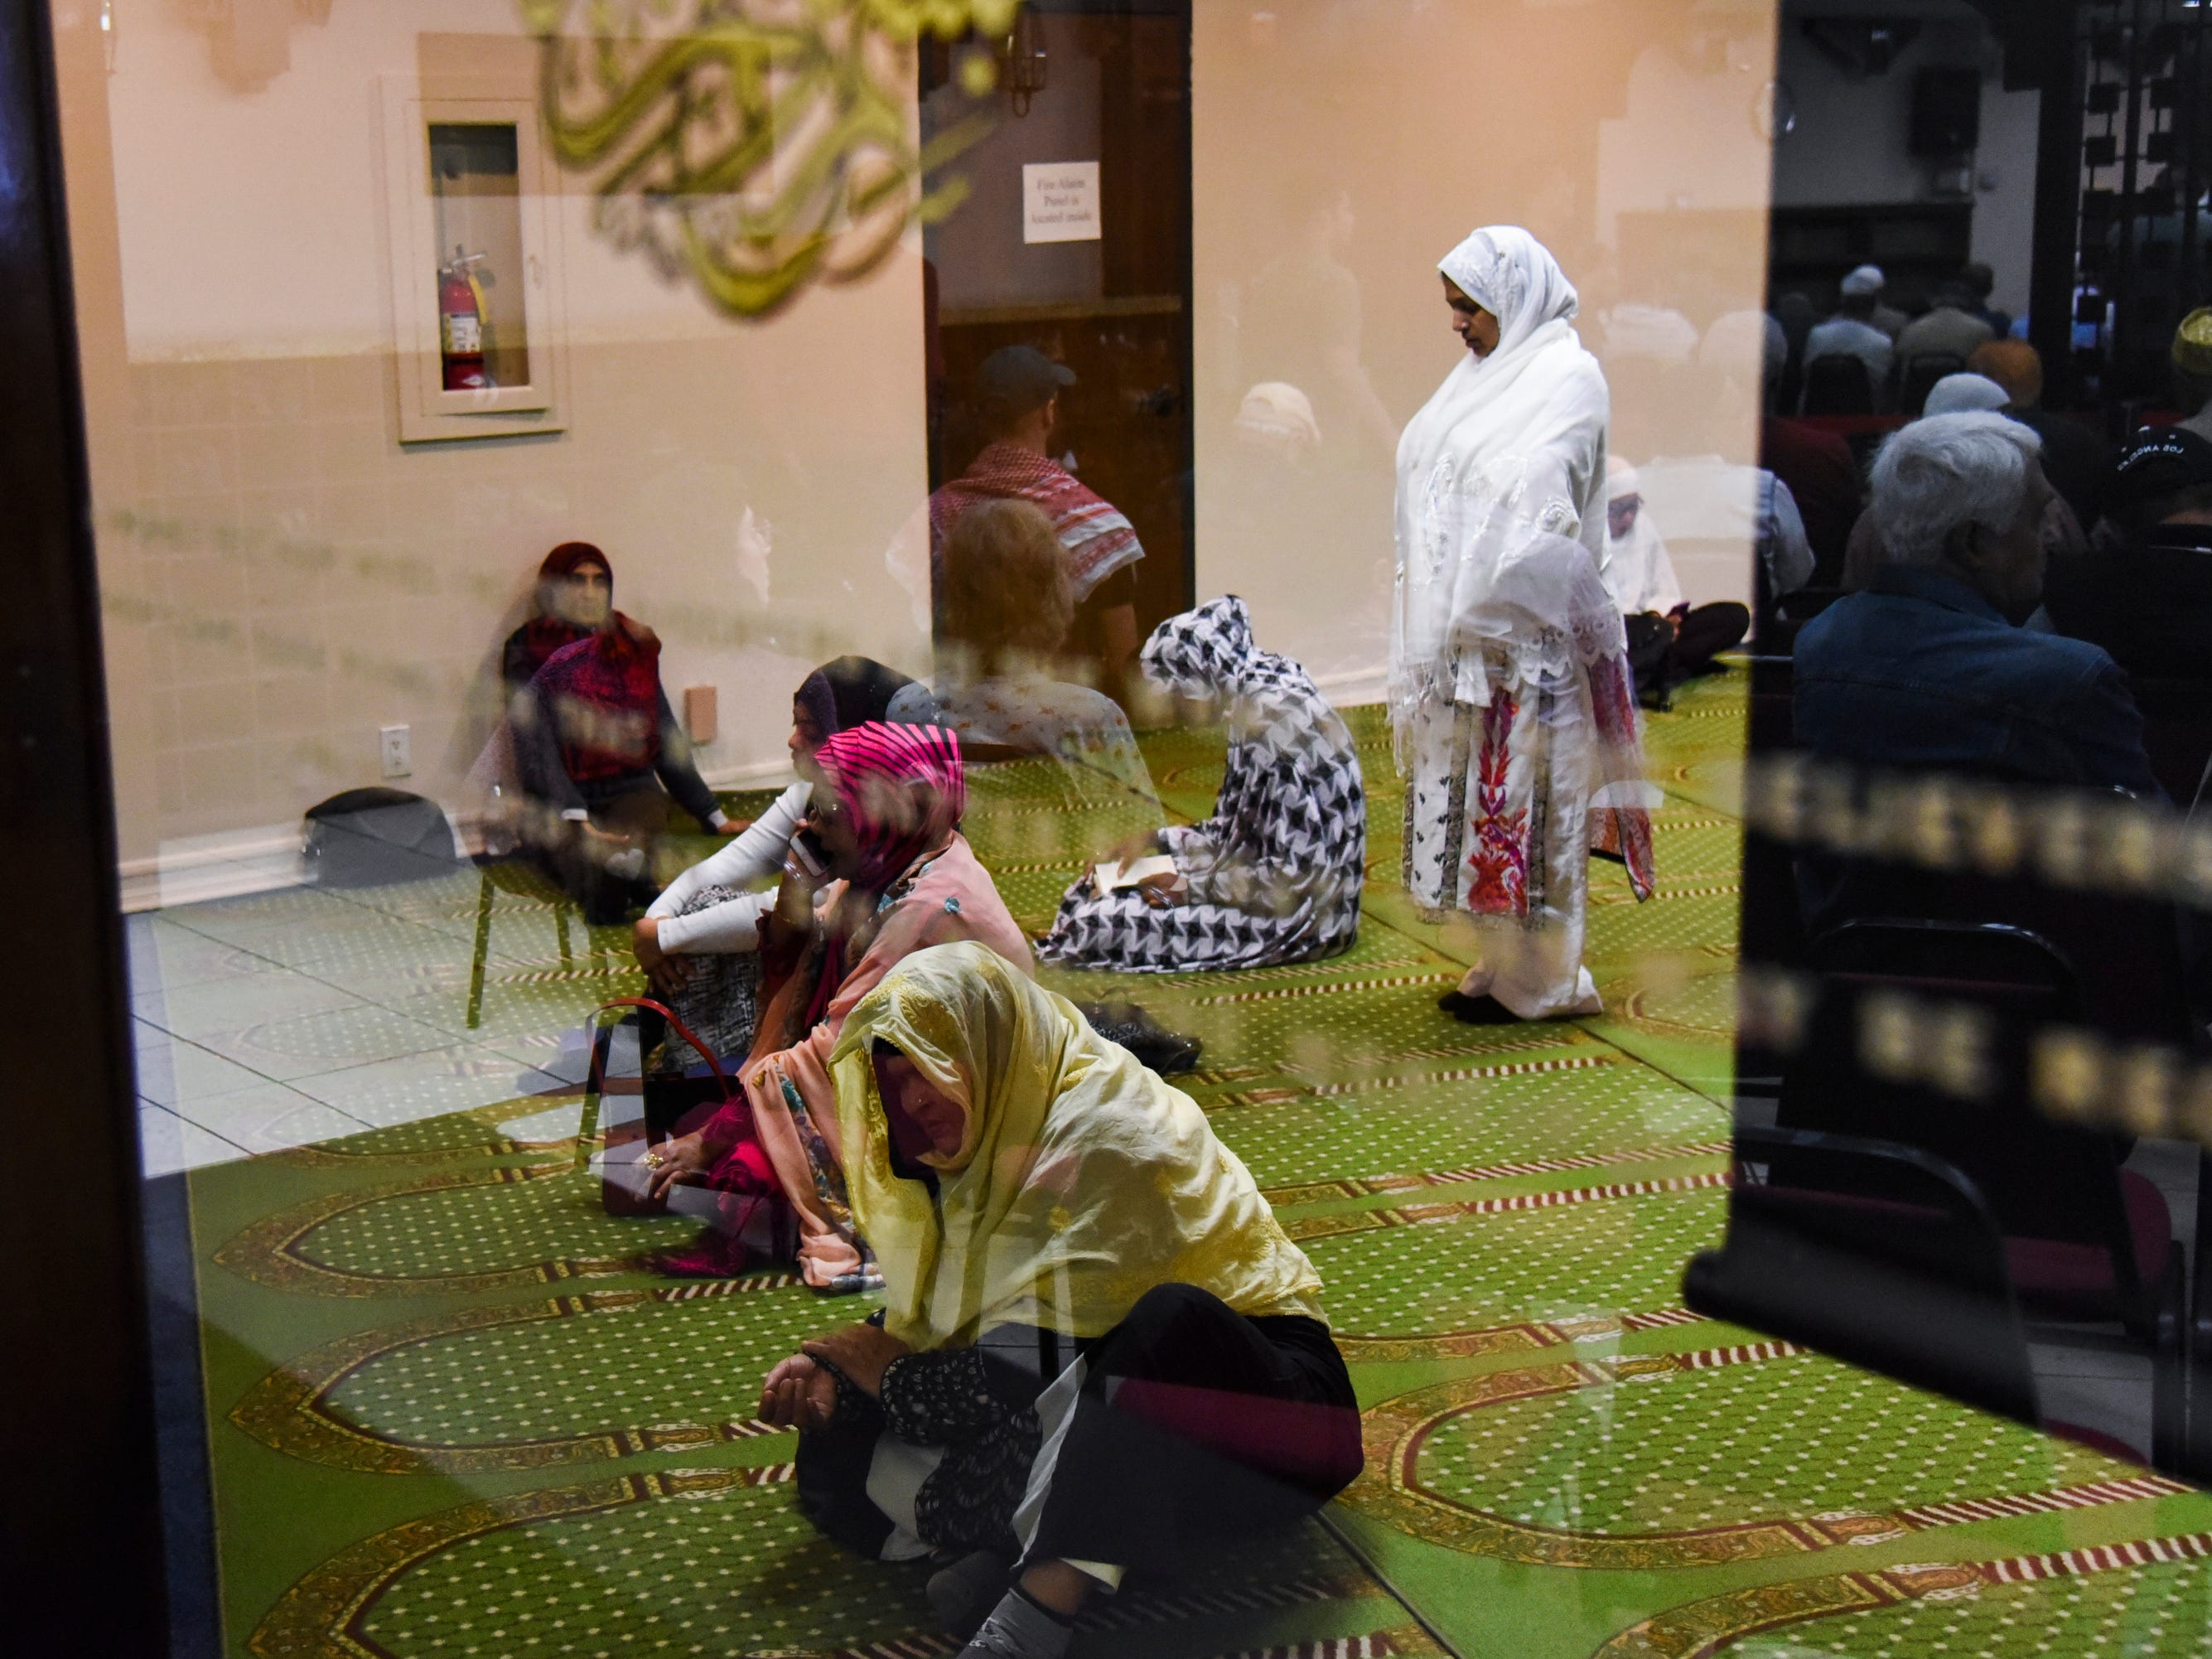 Women pray and prepare for the weekly Jum'a prayer service at the Southern California Islamic Center in Los Angeles, Calif. on March 15, 2019. Yesterday, a man opened fire at two Mosques in New Zealand, killing 49 and wounding many more.